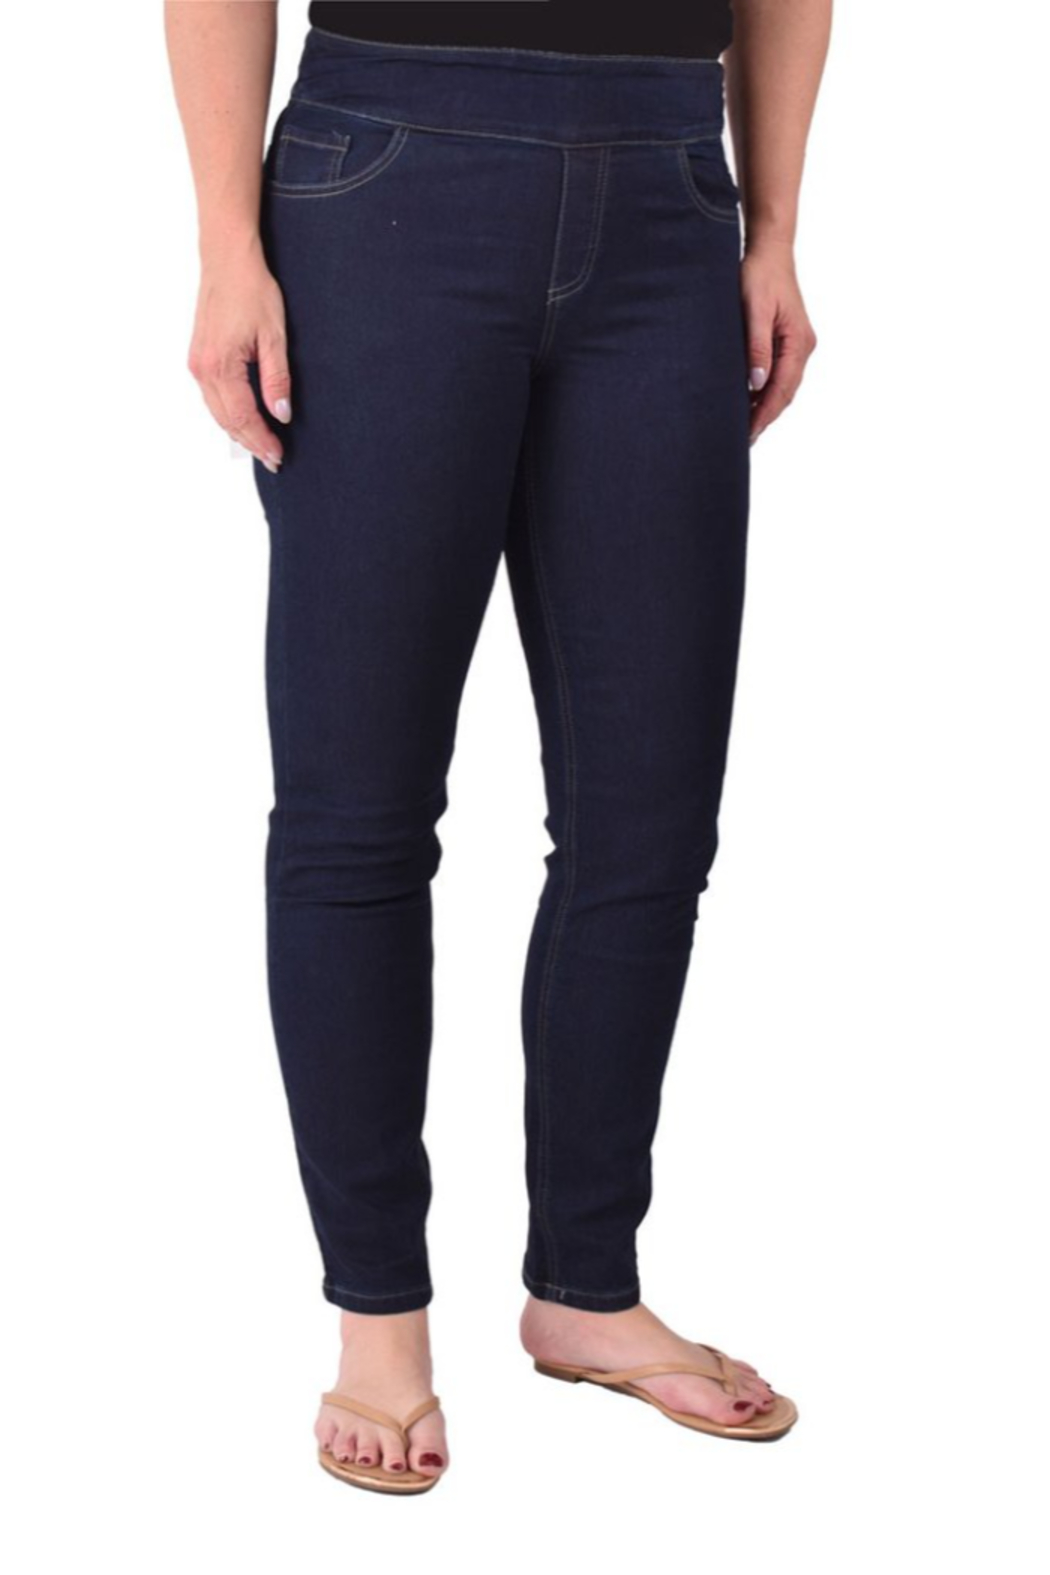 Ethyl  Soft stretch skinny classic jean. All seasons. Pull-on waist. - Main Image